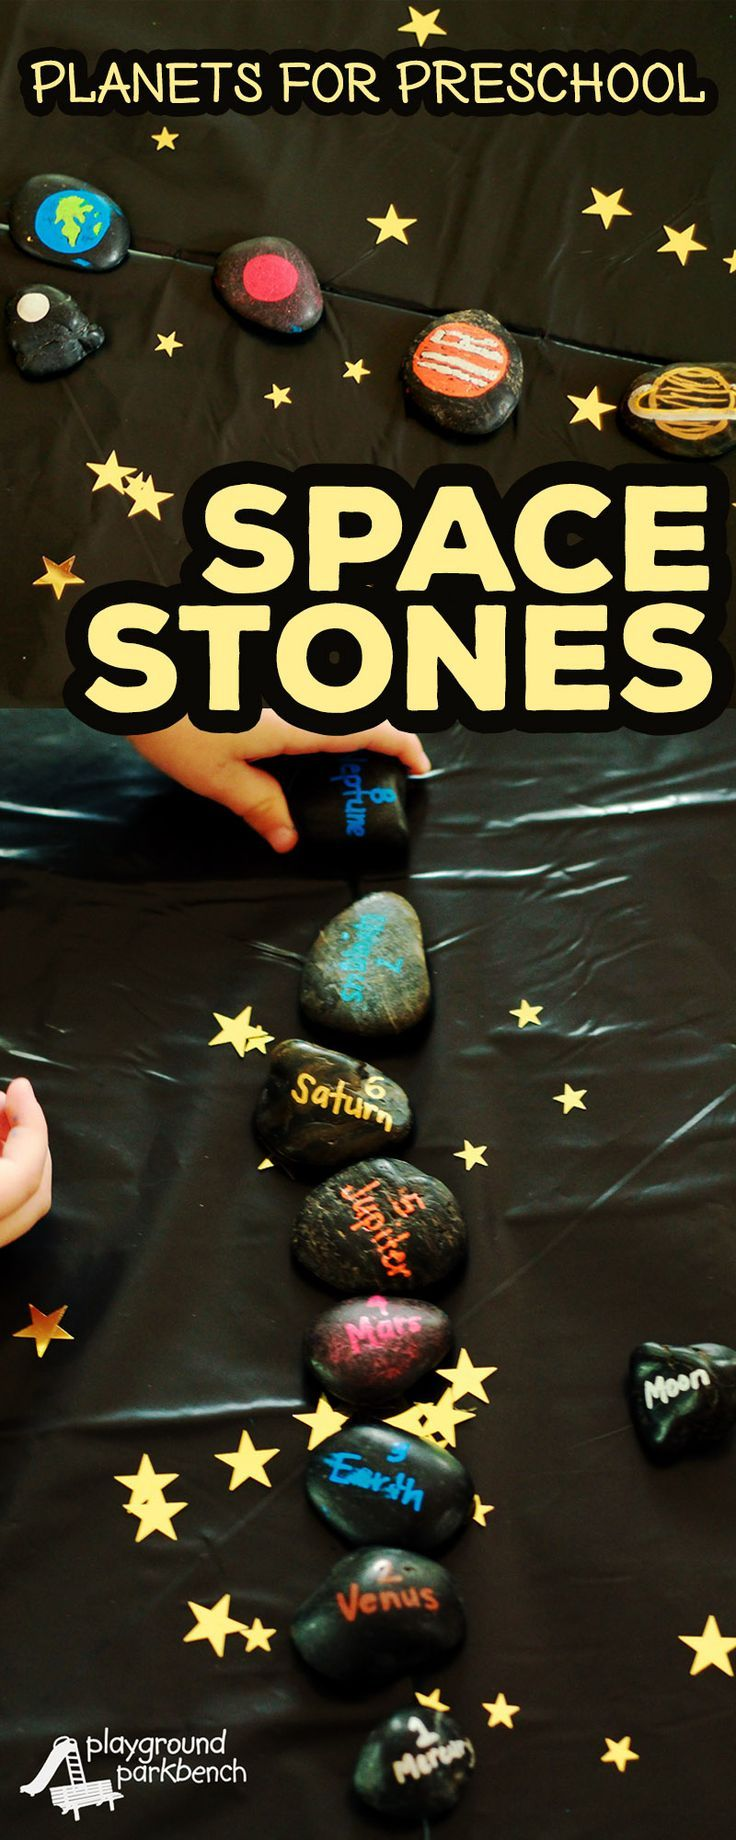 Space Stones: Playing with Planets for Preschool Meghan | Playground Parkbench & Family Finance Mom